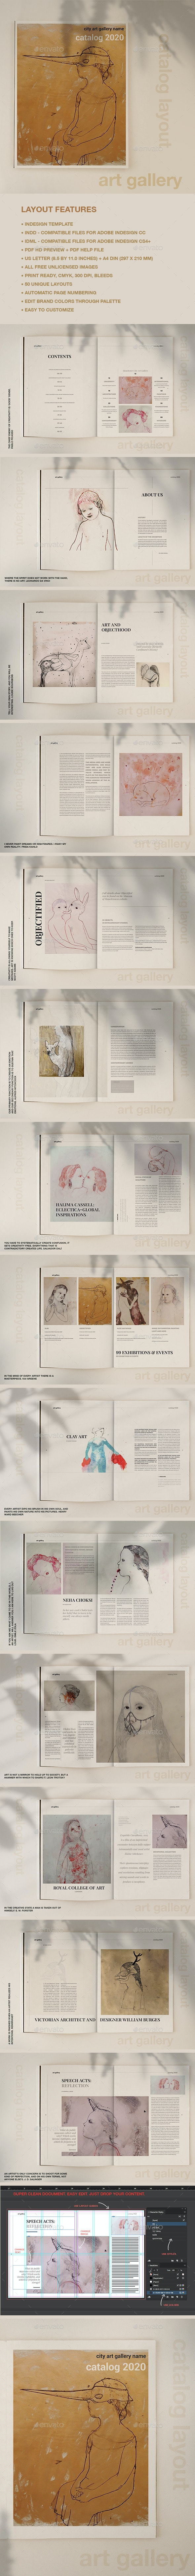 Art Gallery Catalog - Catalogs Brochures